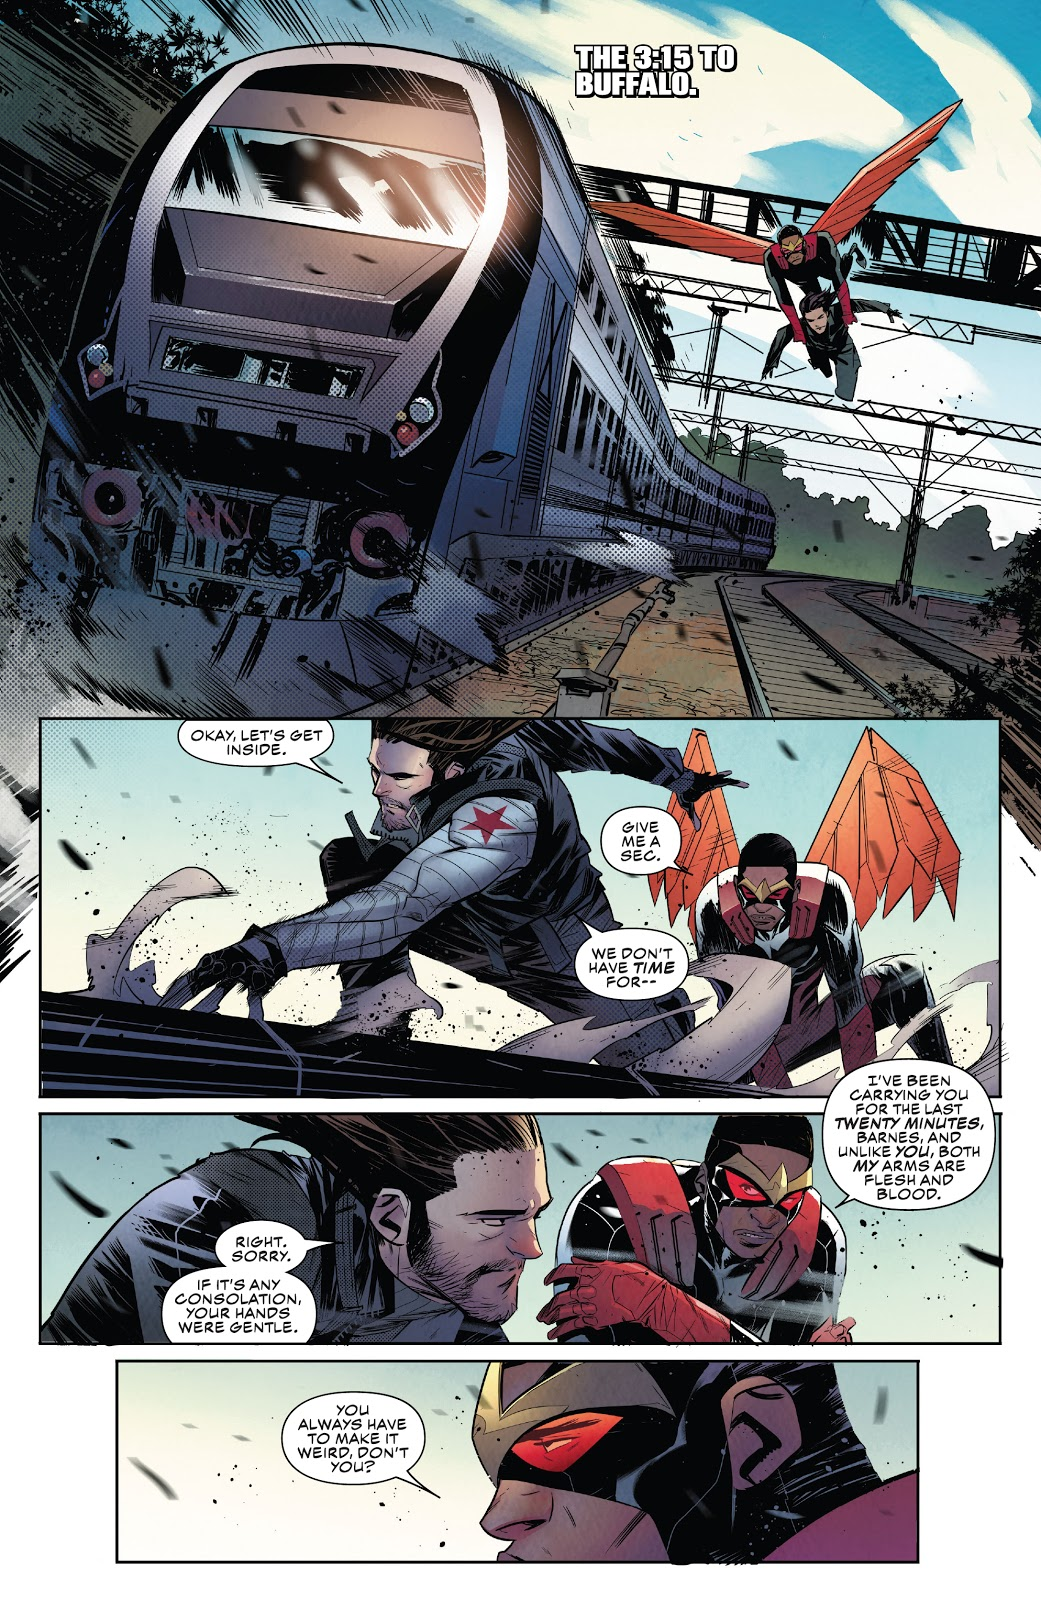 Falcon and Winter Soldier Cut off One Head review